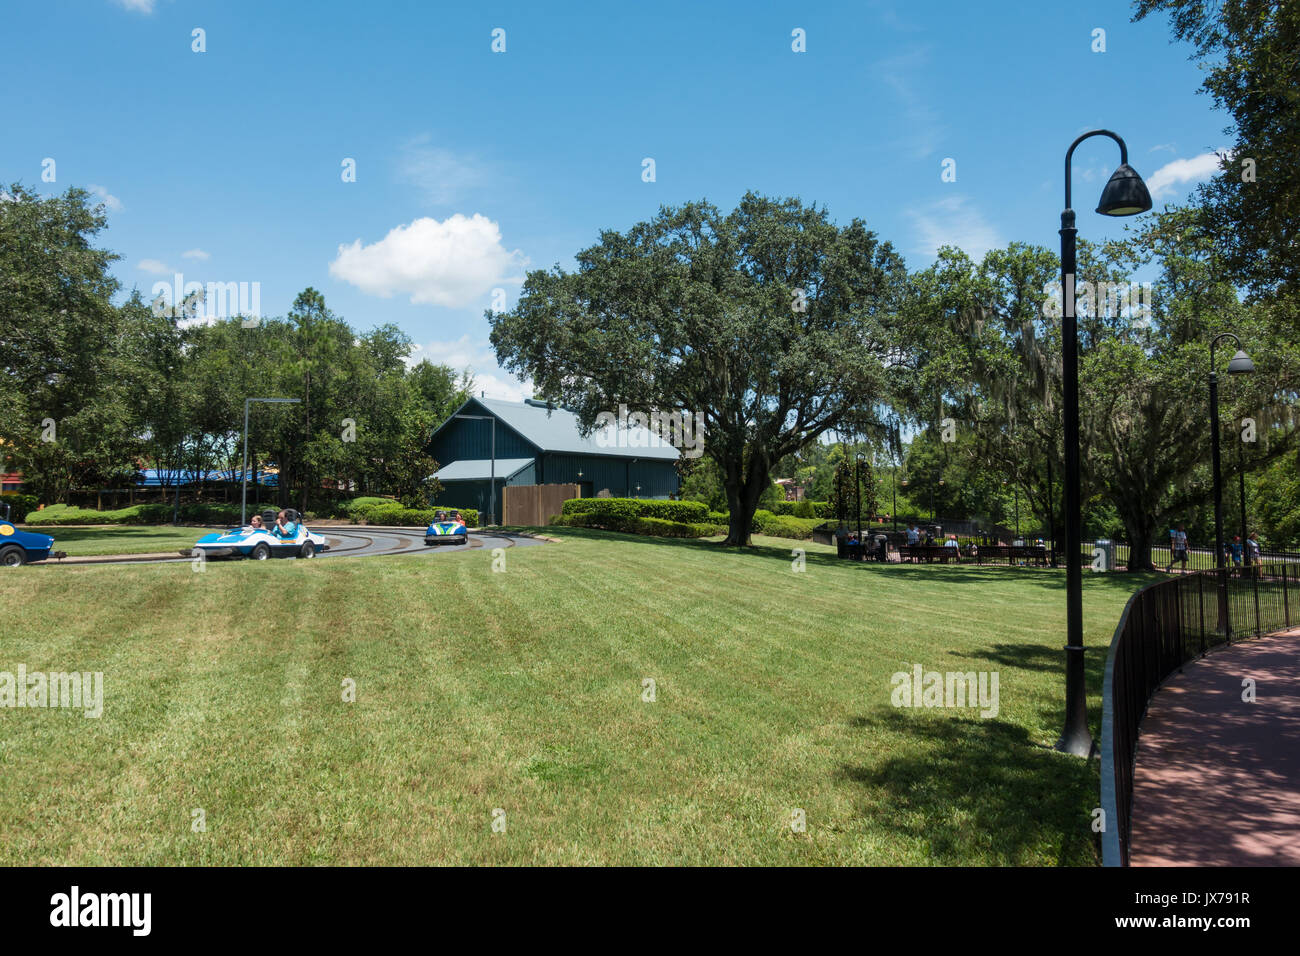 Land by the side of Tomorrowland Speedway in Magic Kingdom Theme Park, Location for the new Tron Rollercoaster ride. - Stock Image